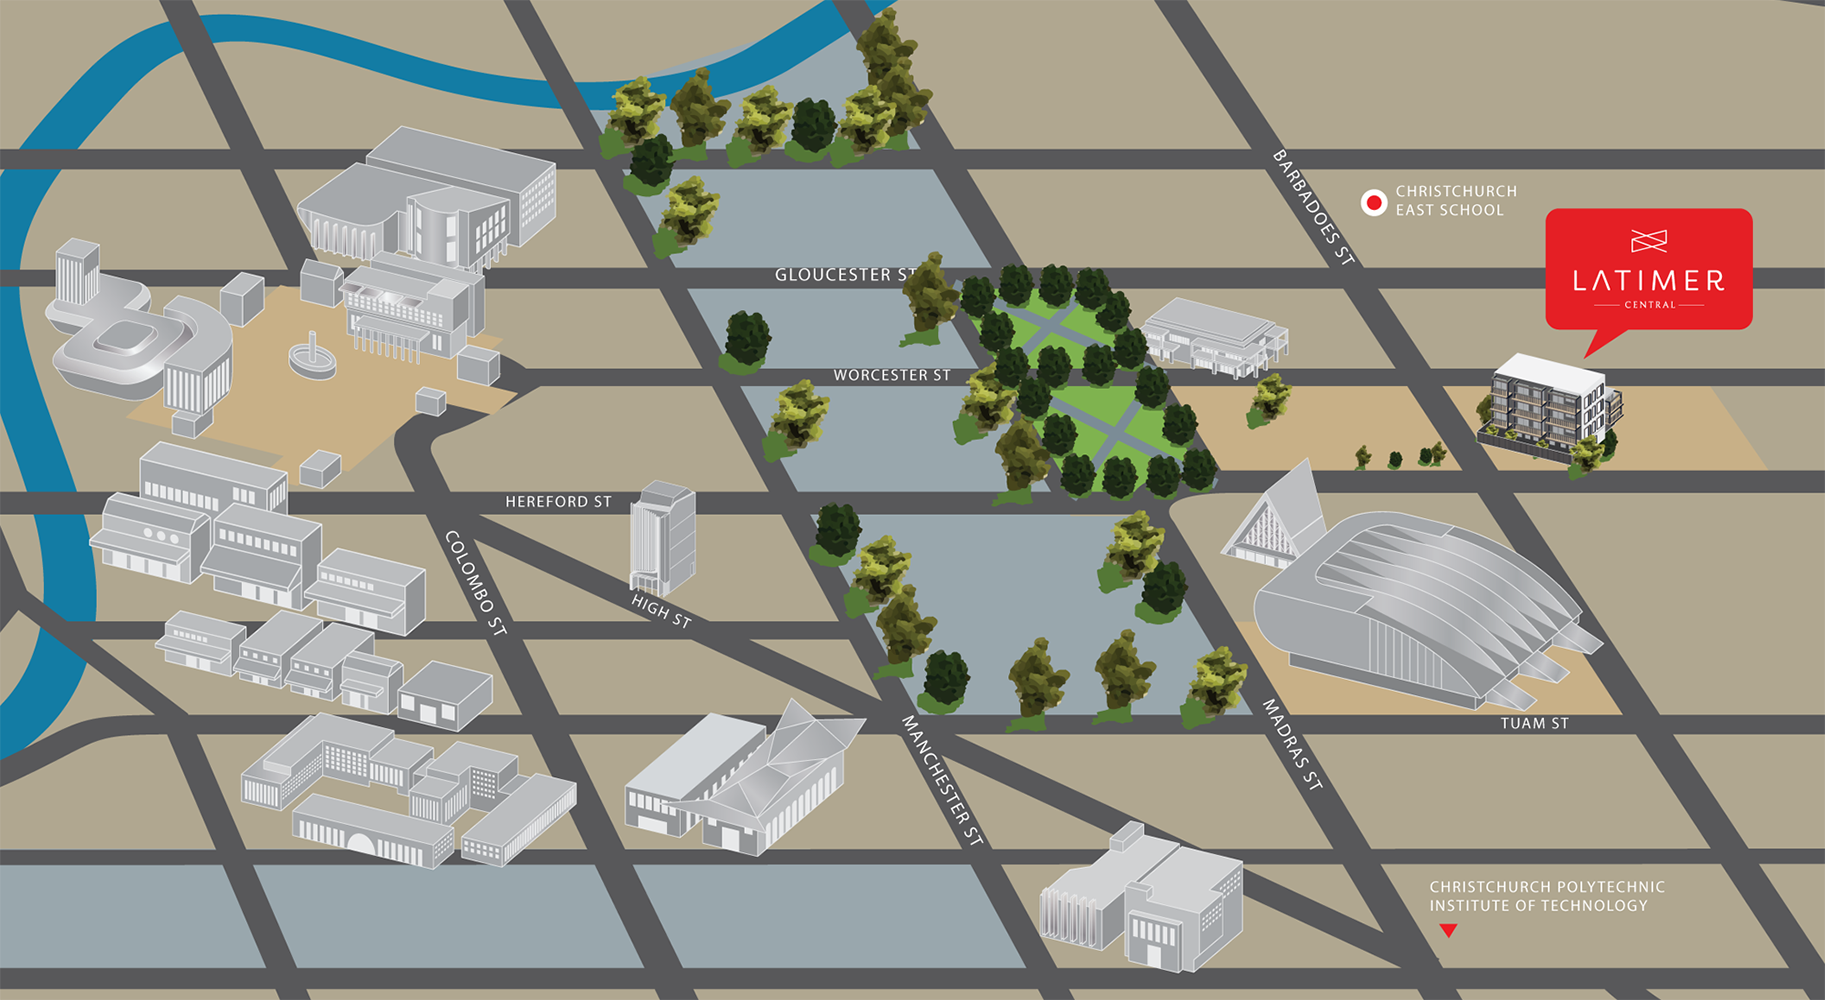 LATIMER_town3D_map_02.png